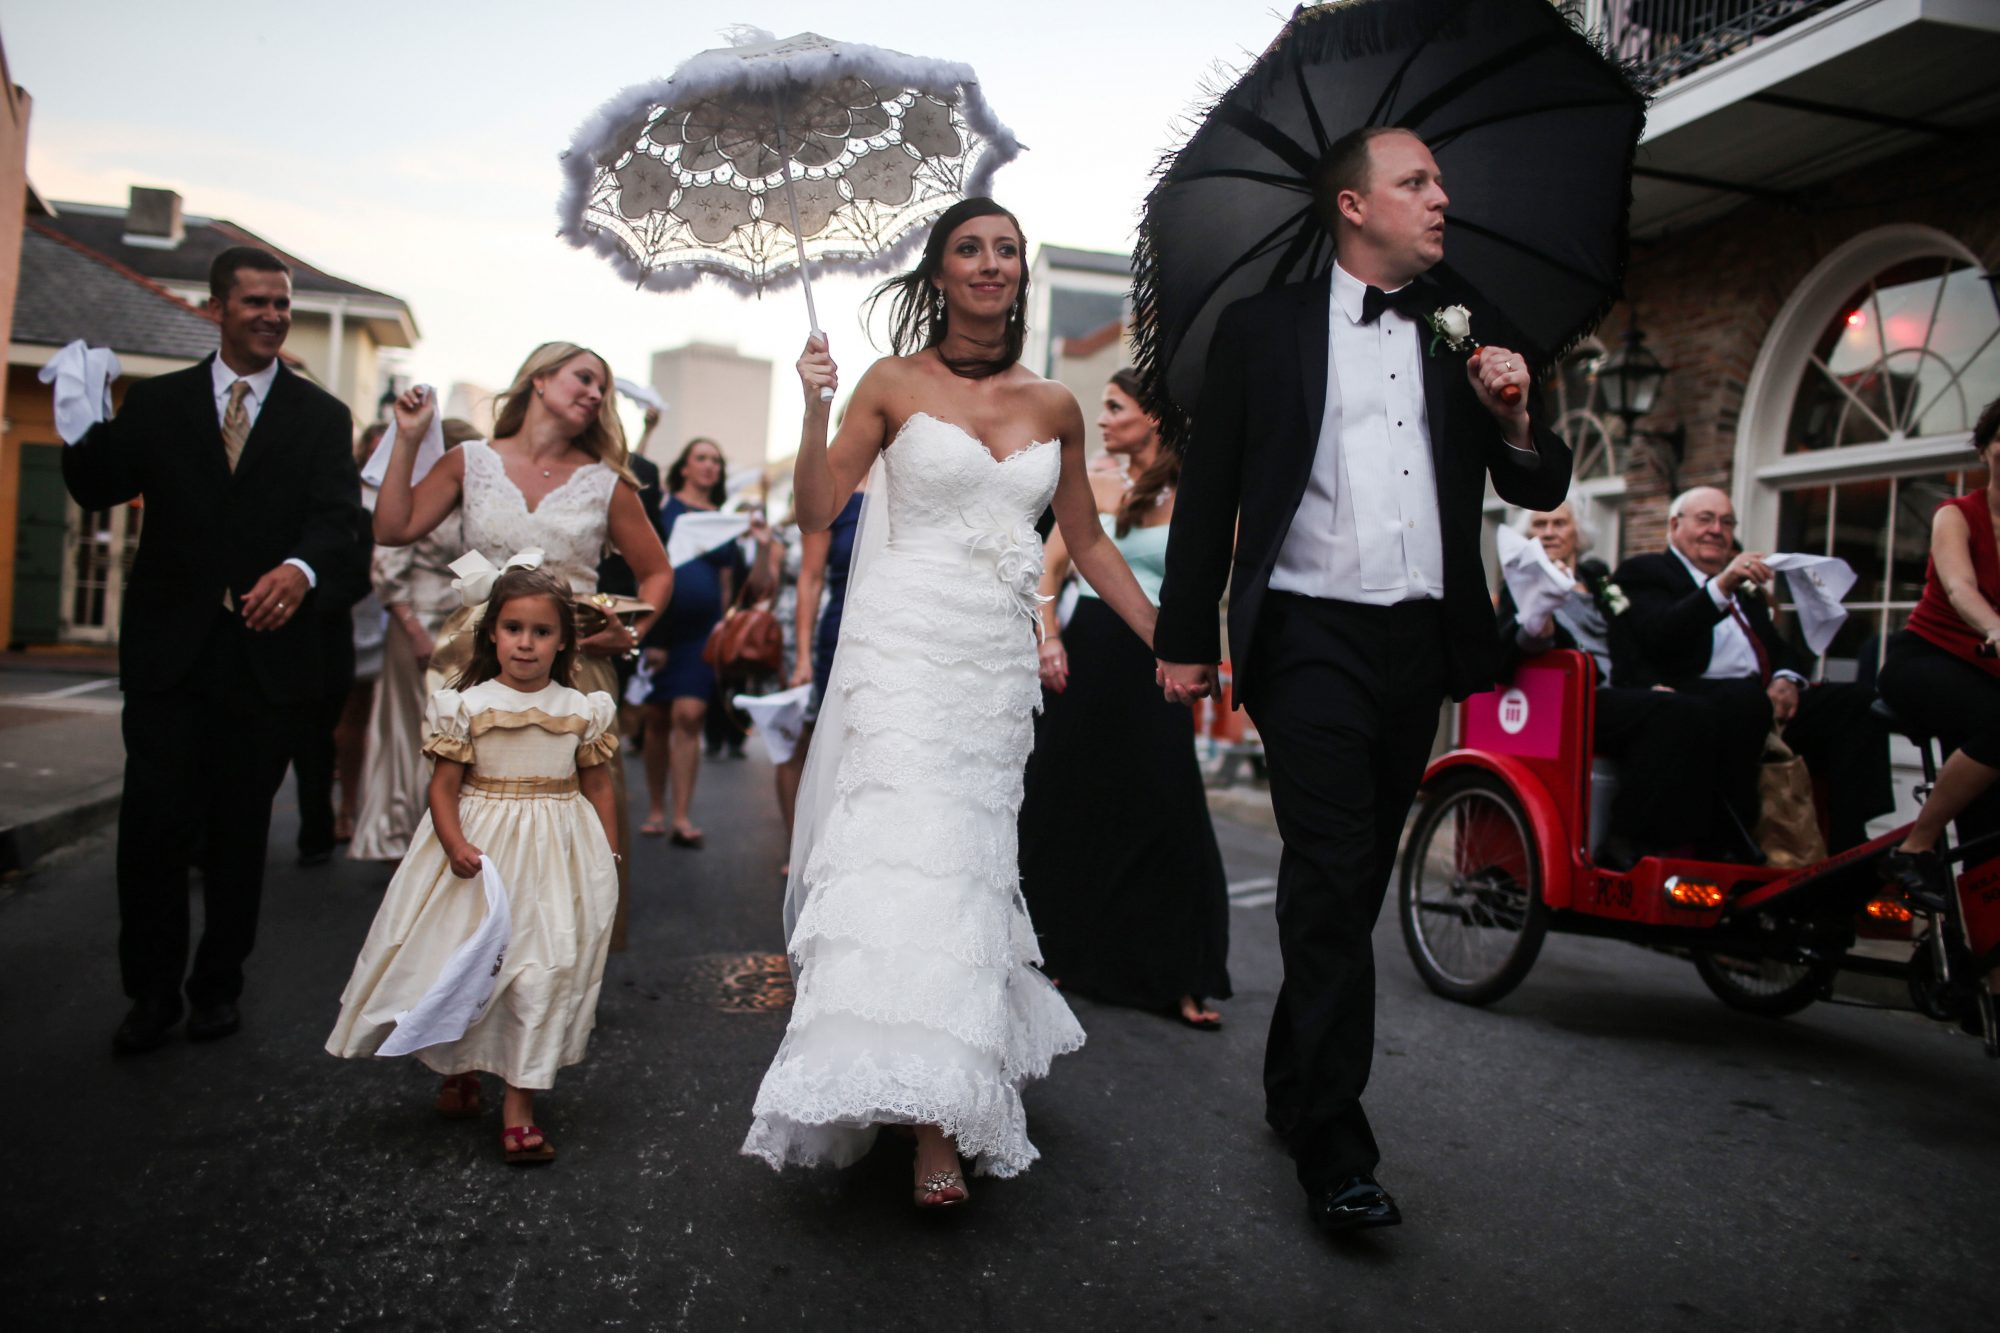 Planning a Wedding in New Orleans? Here's How to Host a